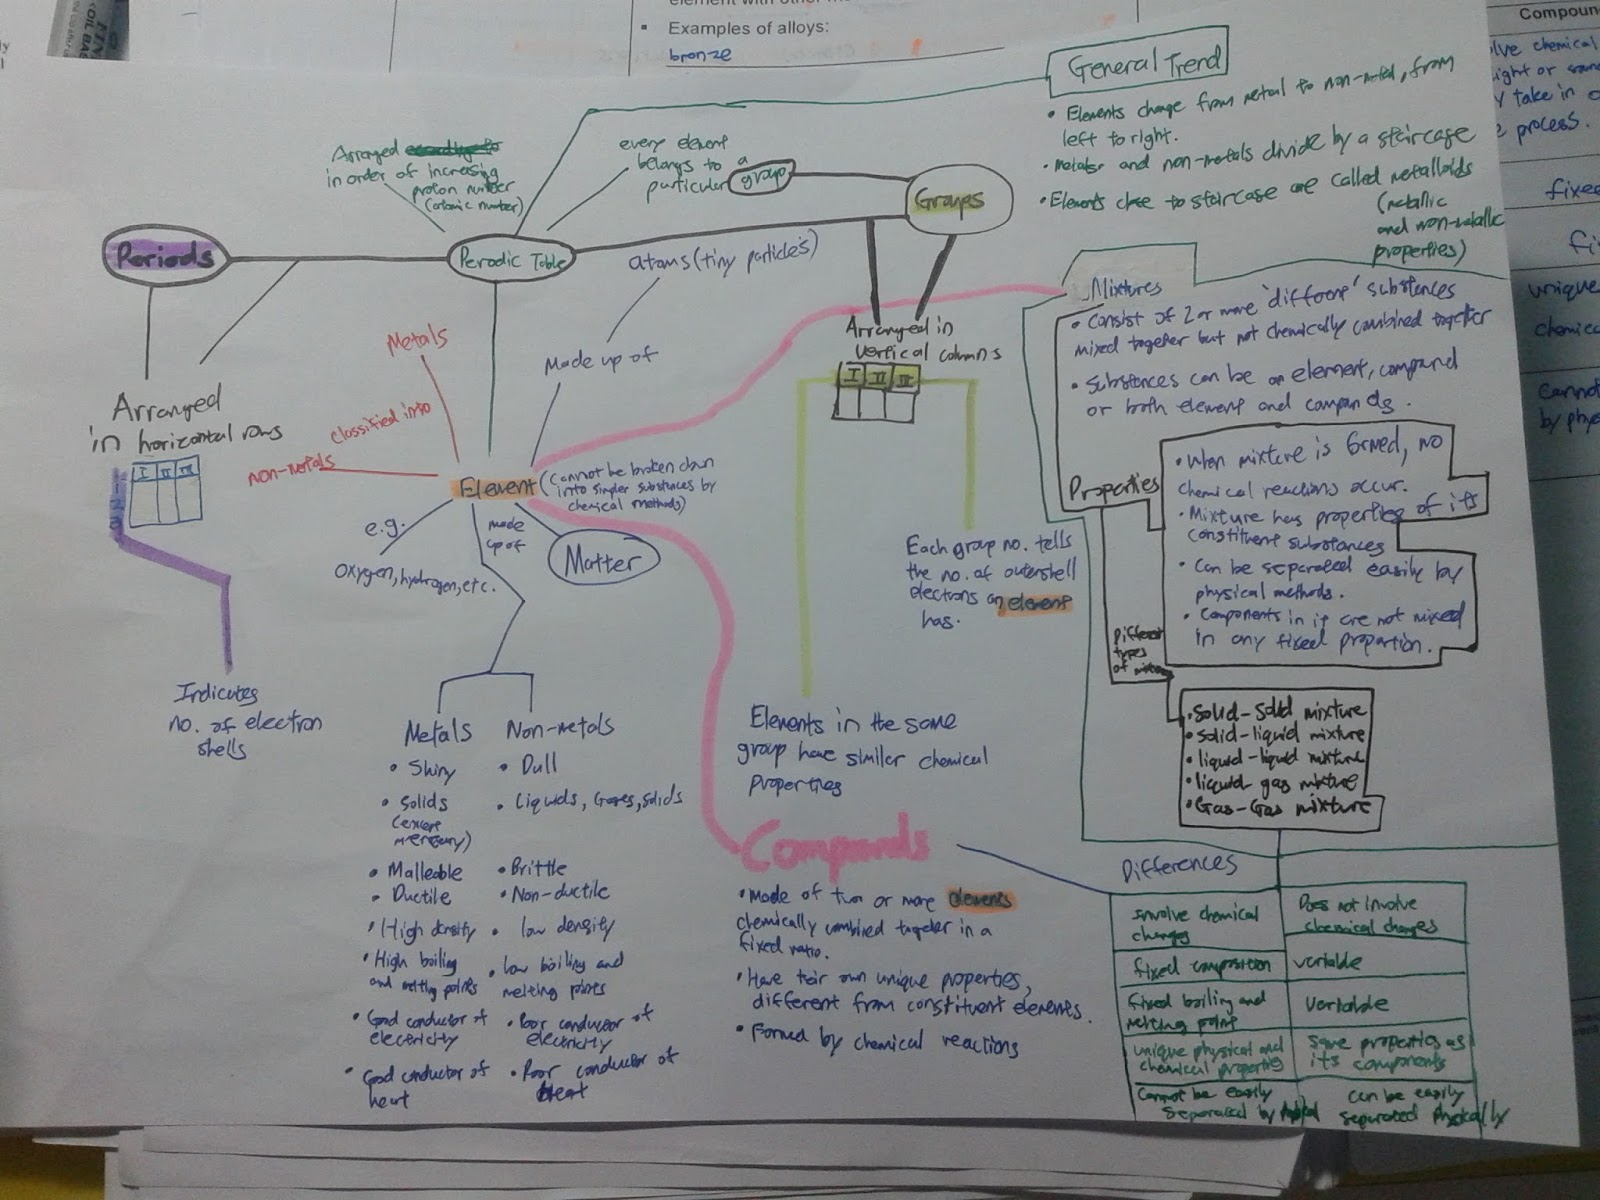 Jacobsia 1e3 Mindmap On Elements Compounds And Mixtures